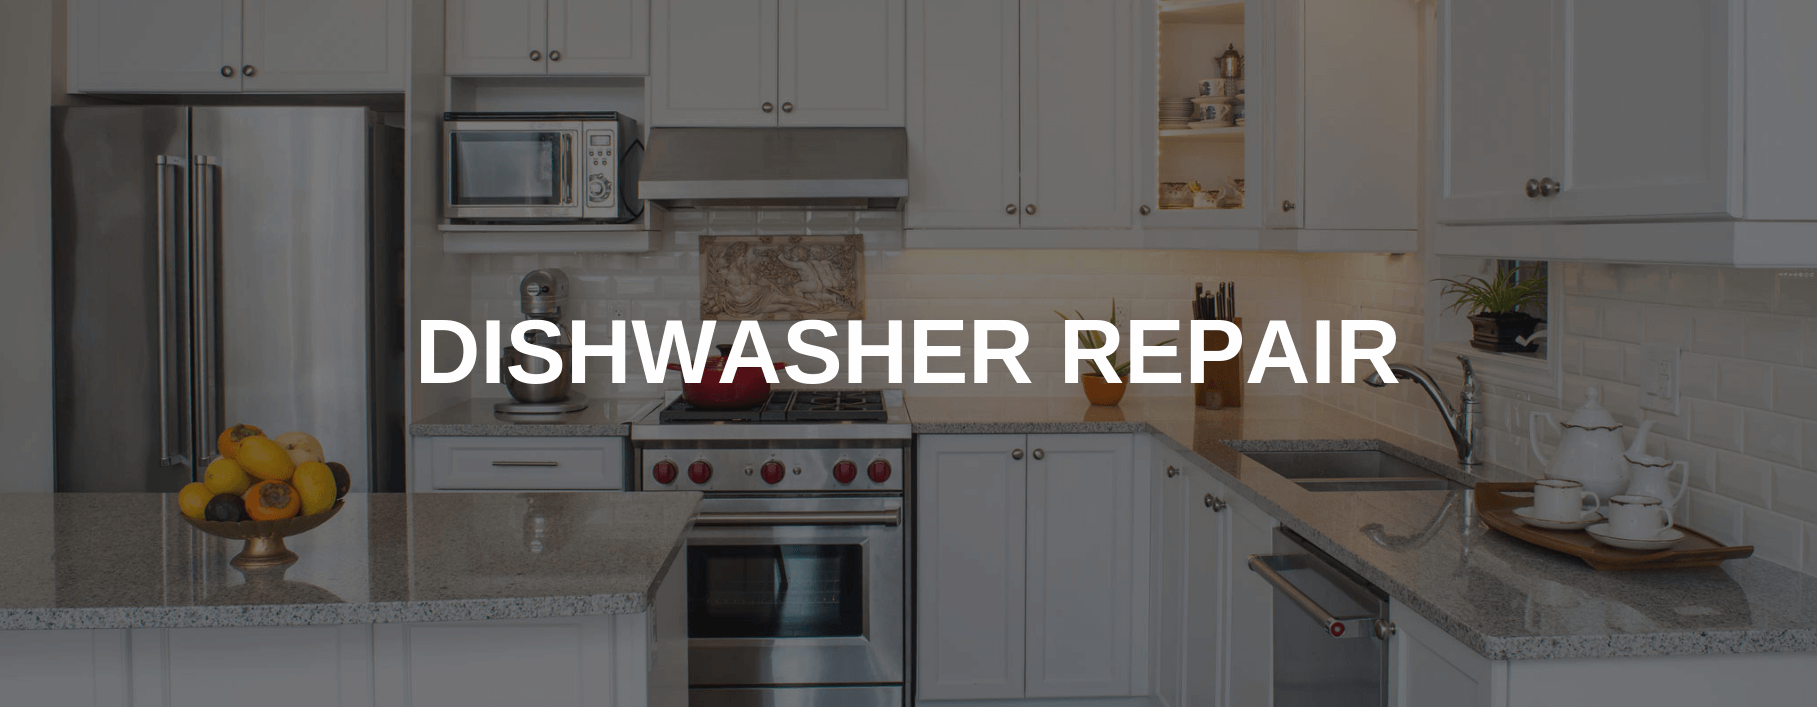 dishwasher repair yonkers